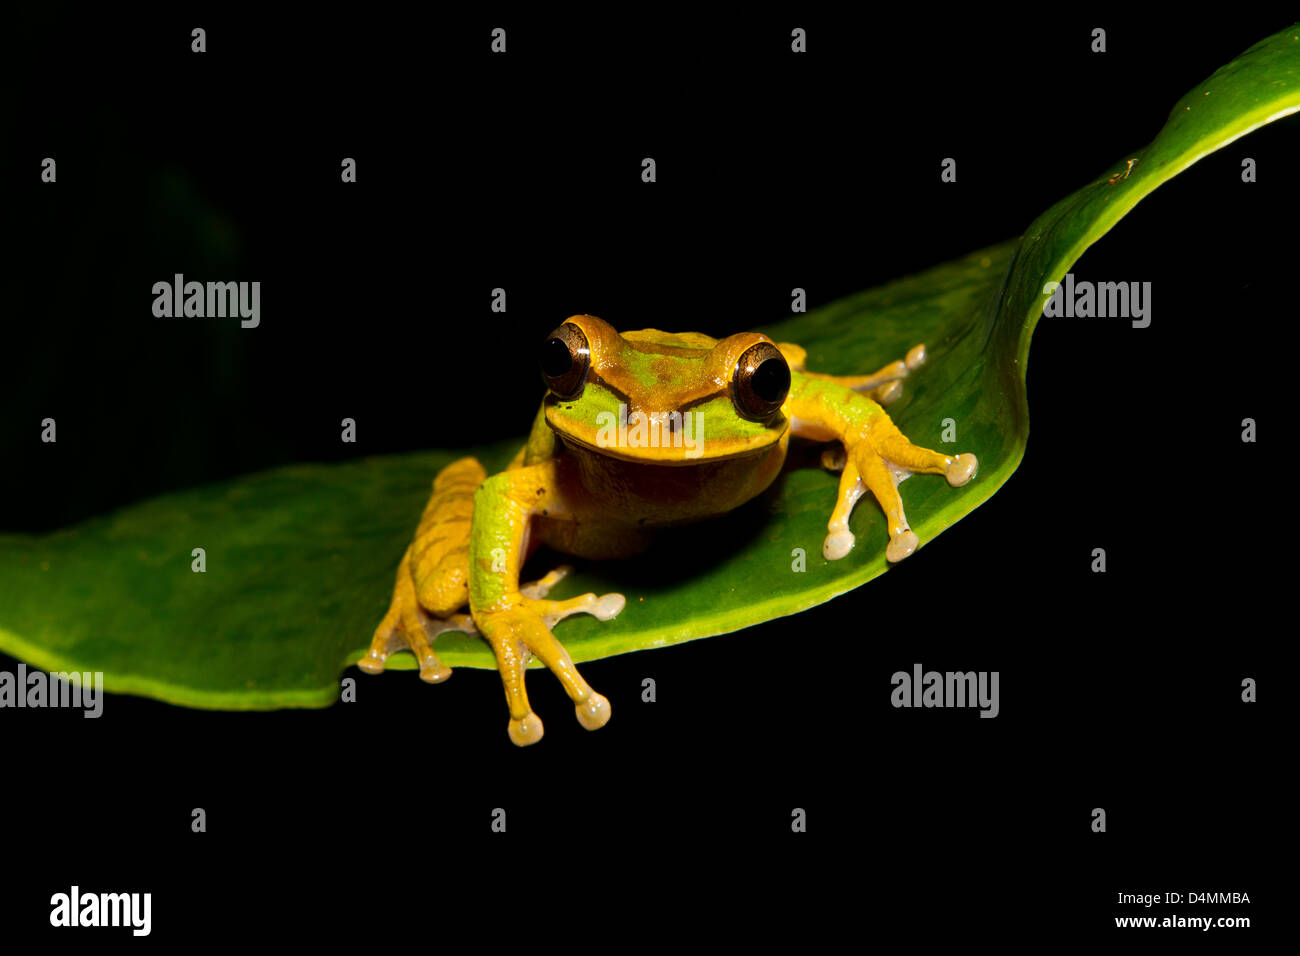 Spotted brown frog on a leaf with black background Stock Photo